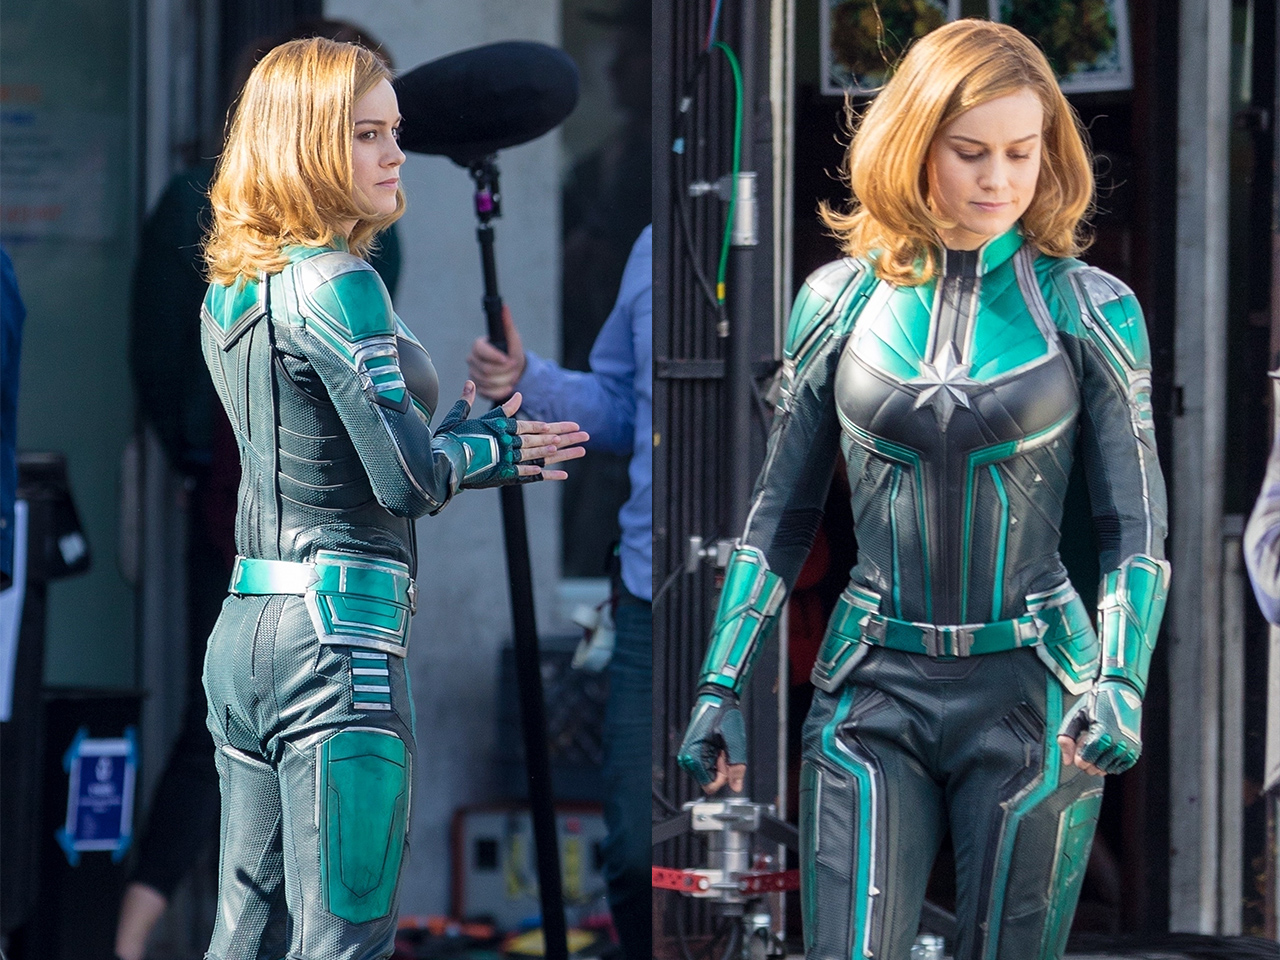 Photos Brie Larson S Captain Marvel Costume Revealed On Movie Set Brie can be seen wearing a green suit, that borrows heavily from the comics. brie larson s captain marvel costume